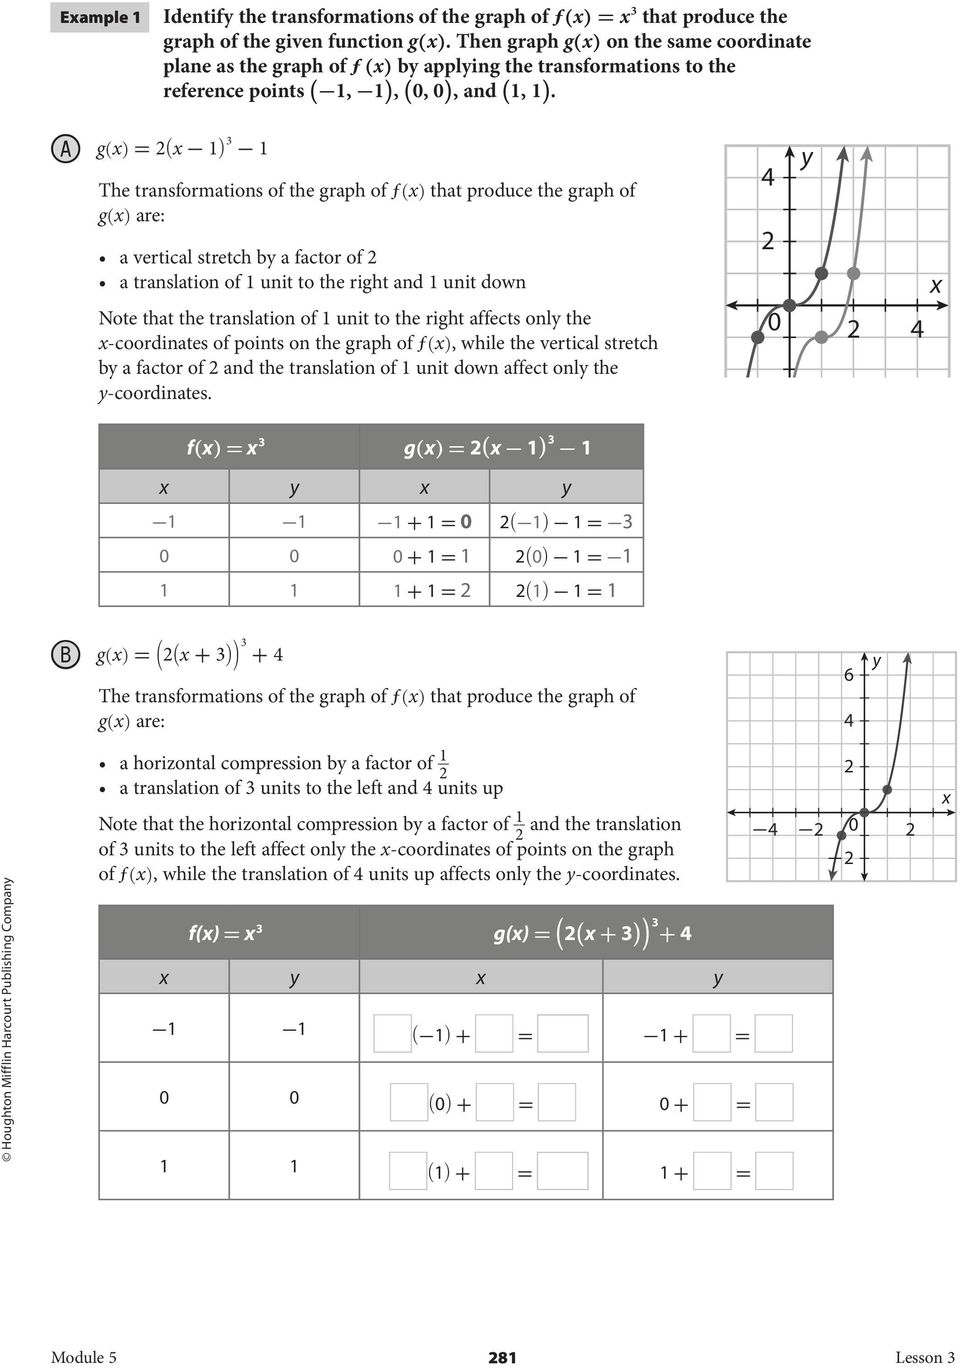 How can I find domain and range when given a data set of coordinates